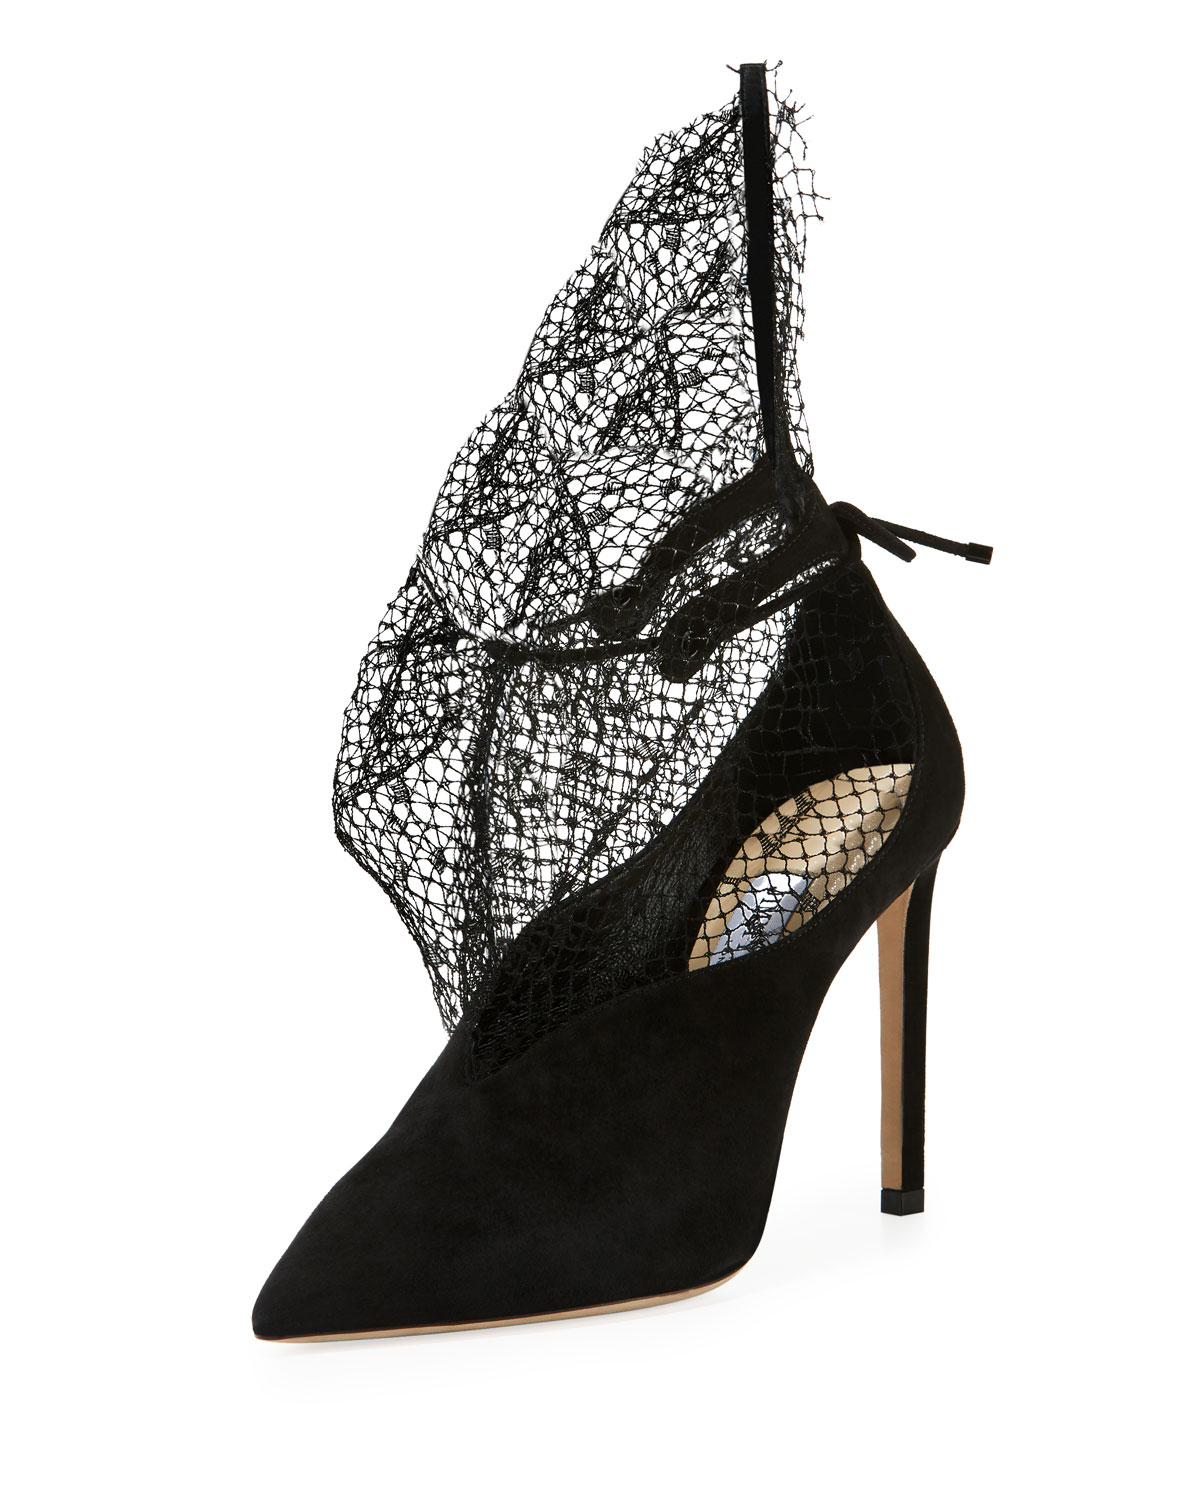 8dabd3887490 Jimmy Choo Leanne Suede Pumps with Sculptural Netting